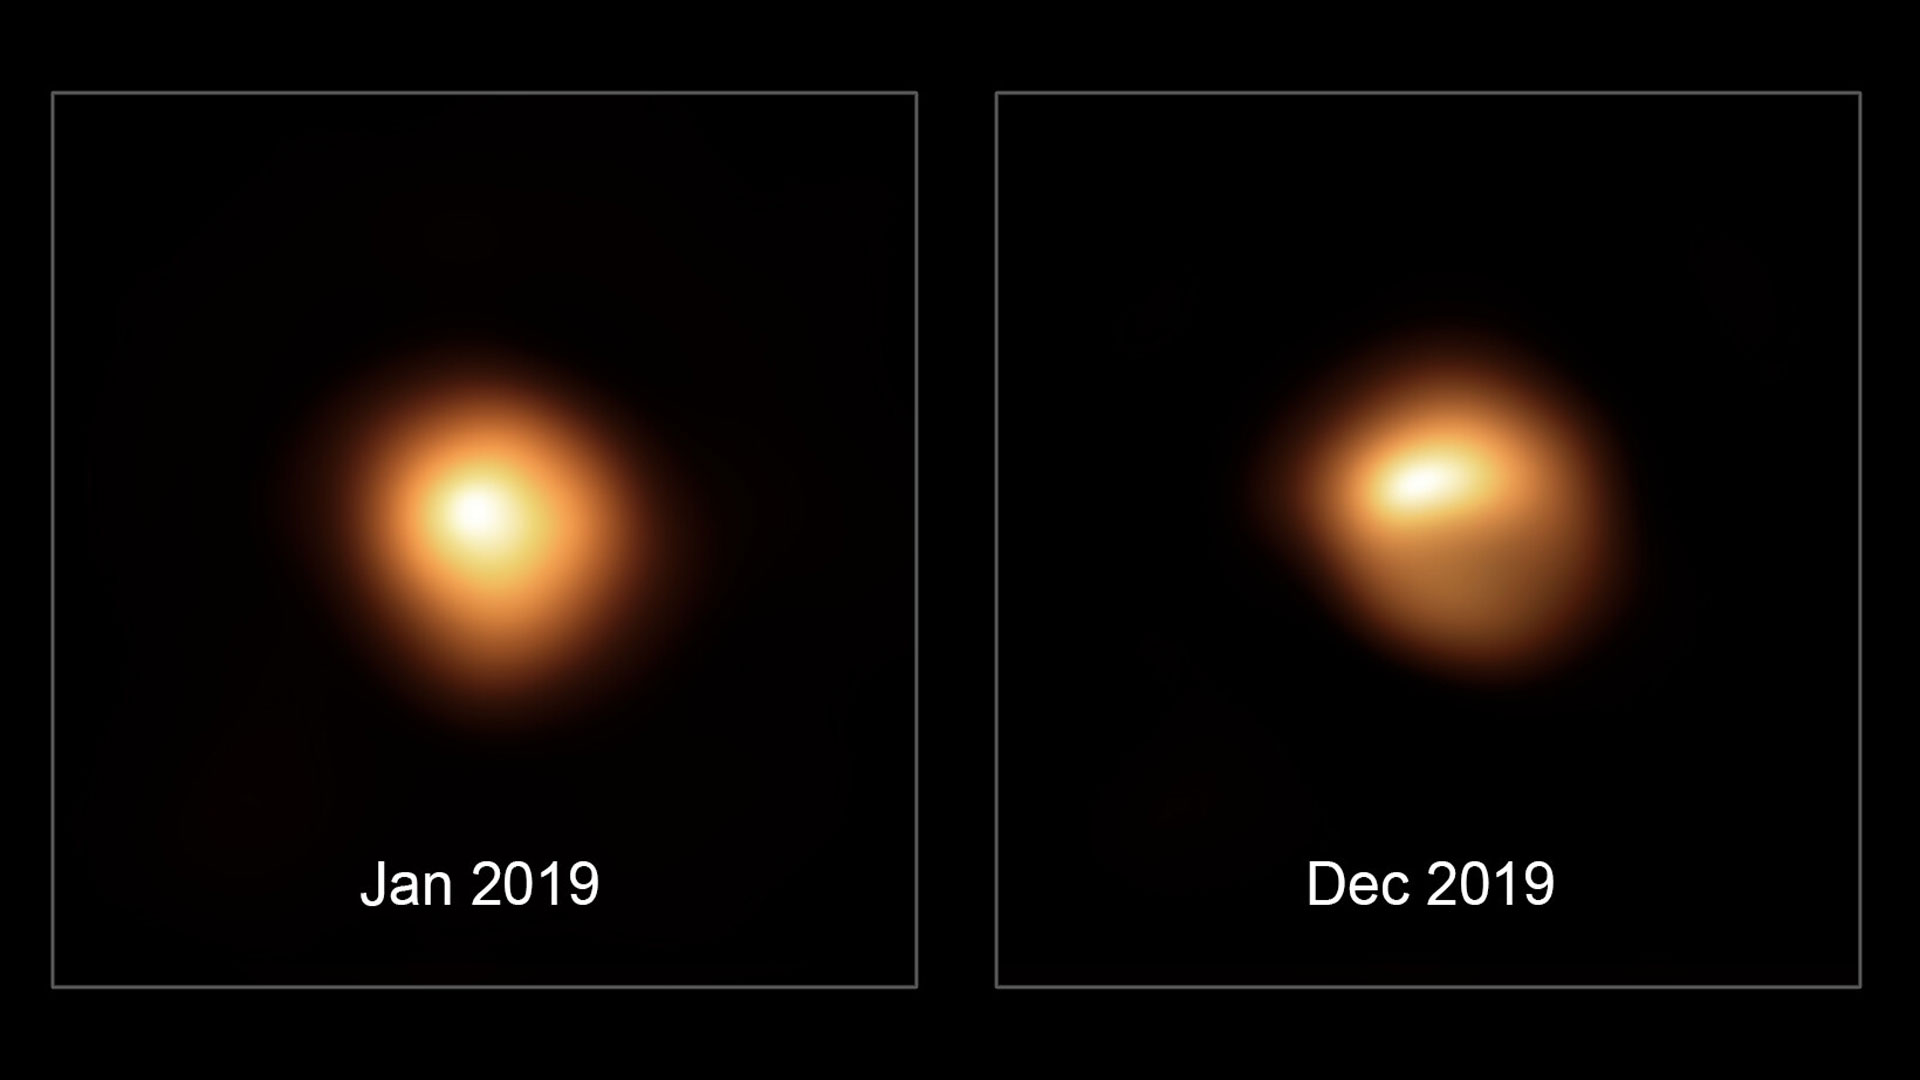 Two images captured approximately one year apart with the SPHERE instrument on the European Southern Observatory's Very Large Telescope show the apparent dimming of the star Betelgeuse.